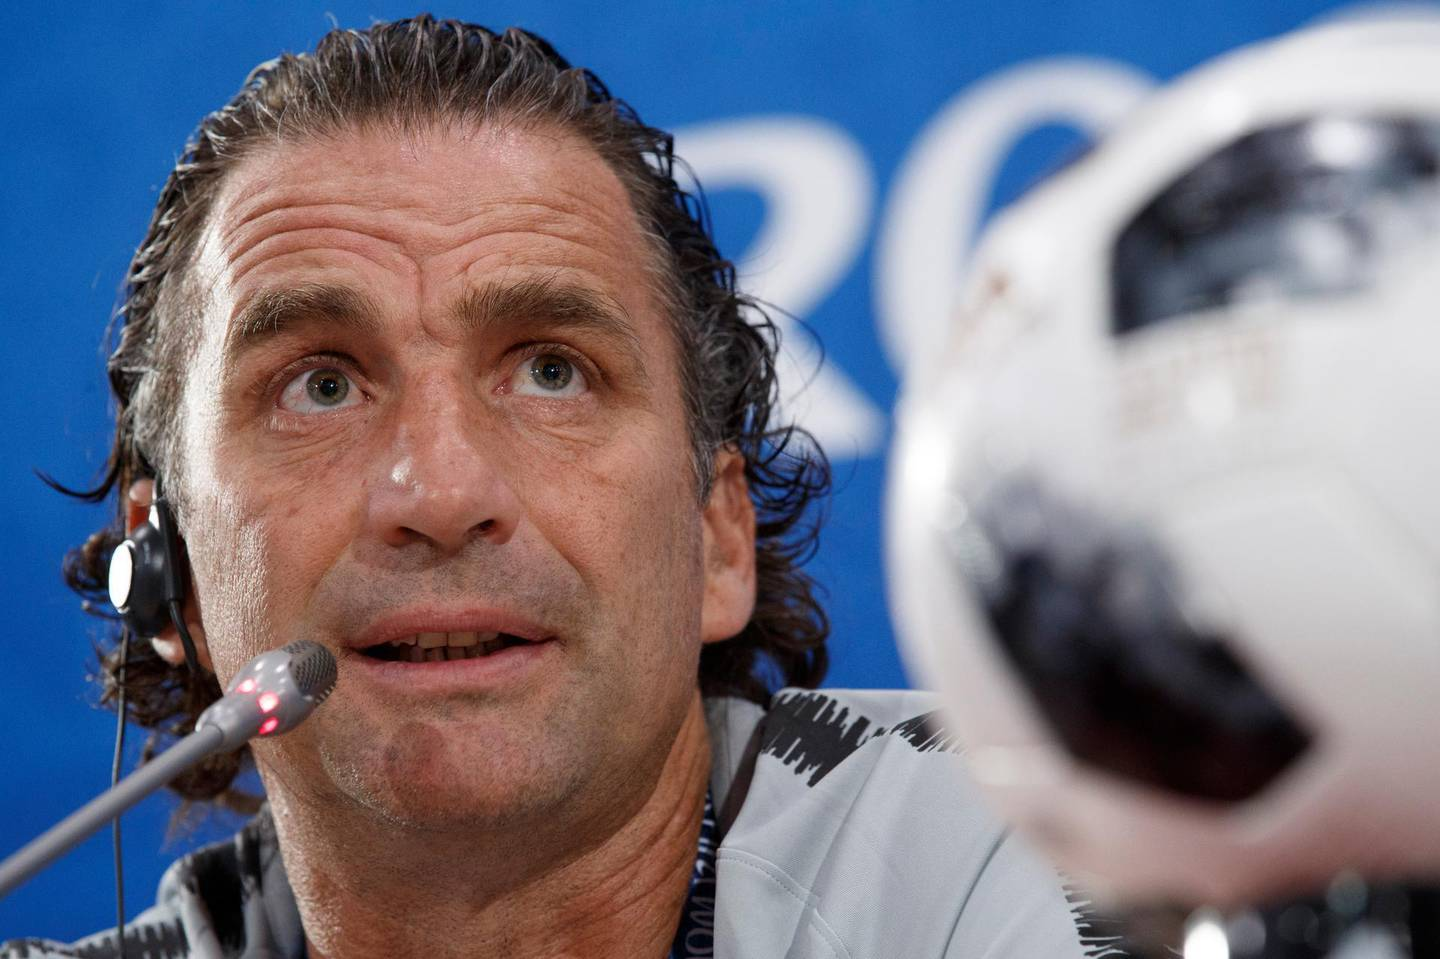 epa06822138 Saudi Arabia head coach Juan Antonio Pizzi during a press conference in Rostov-on-Don, Russia 19 June 2018. Uruguay will play Saudi Arabia in their FIFA World Cup 2018 Group A match 20 June 2018.  EPA/SHAWN THEW   EDITORIAL USE ONLY